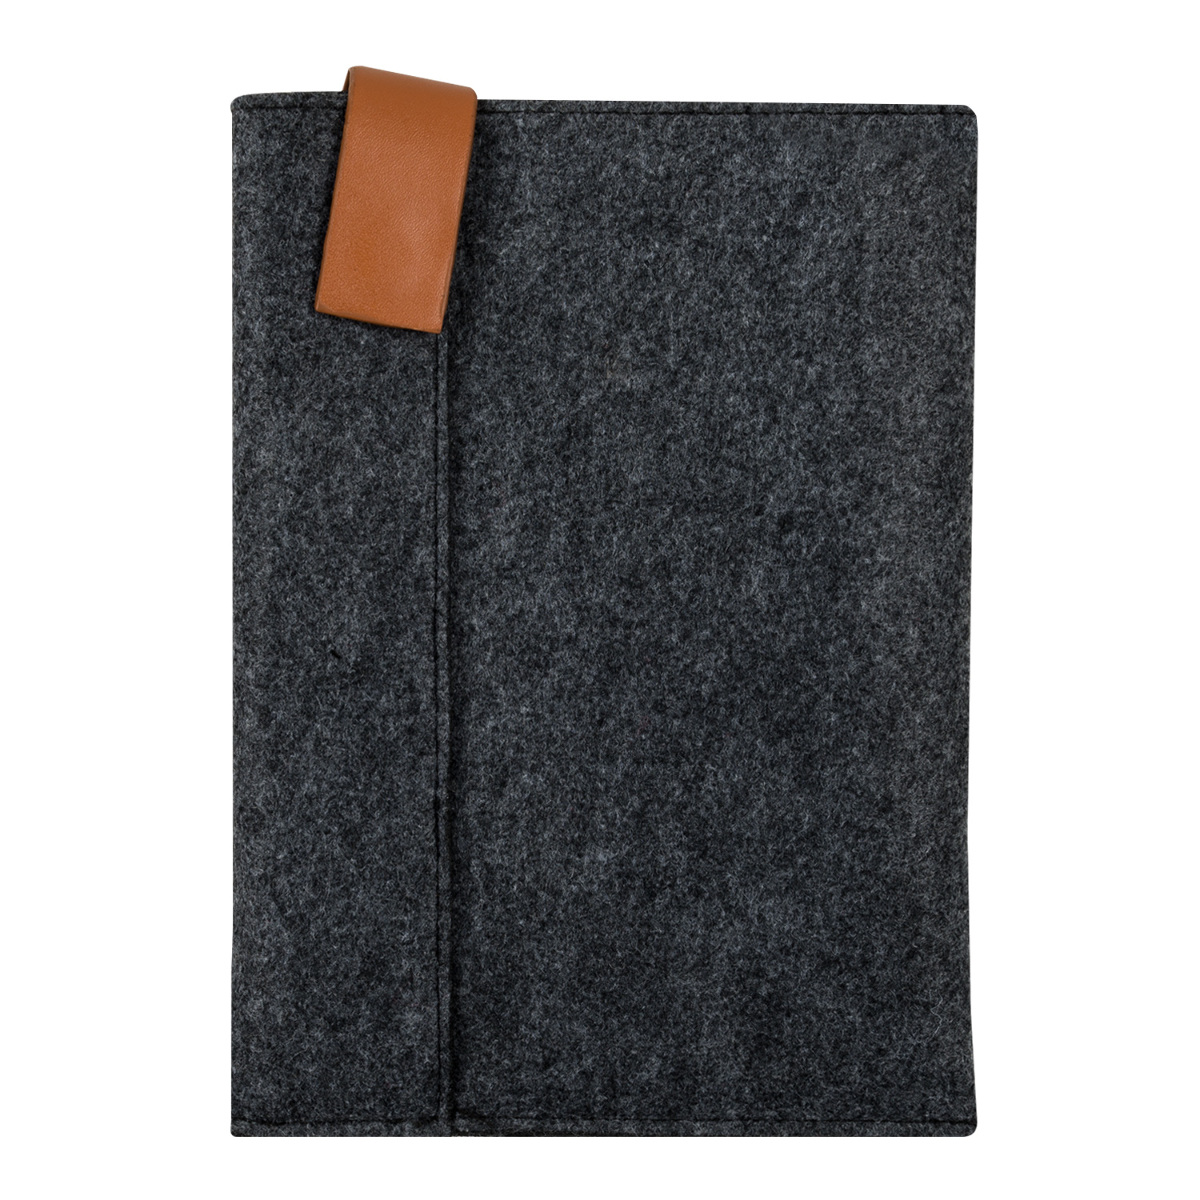 kwmobile-HOUSSE-PROTECTION-POUR-APPLE-IPAD-AIR-AIR-2-ETUI-SLEEVE-SUPPORT-HOUSSE